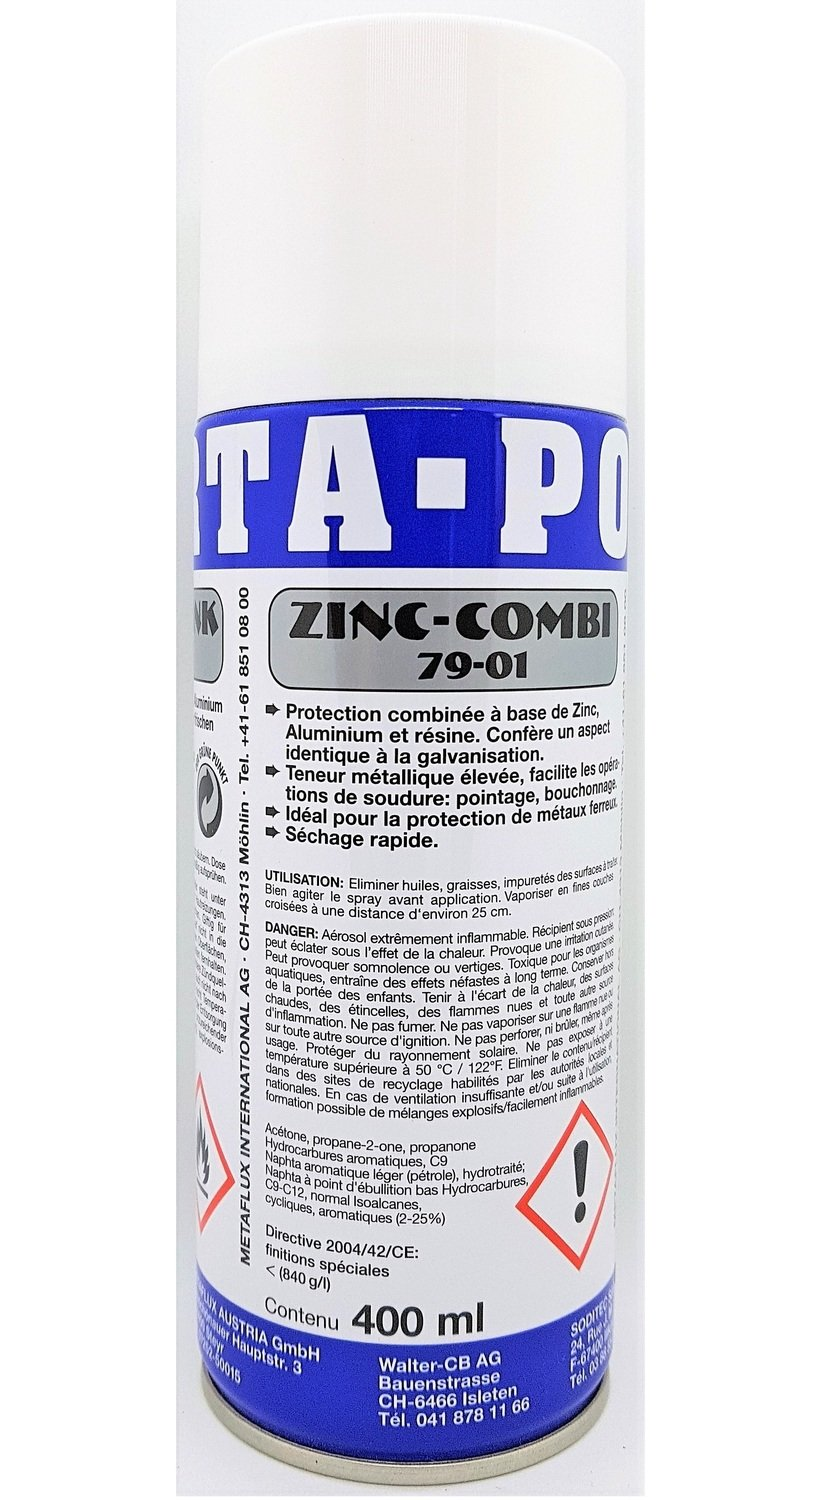 Porta combi zink spray, inhoud: 400 ml